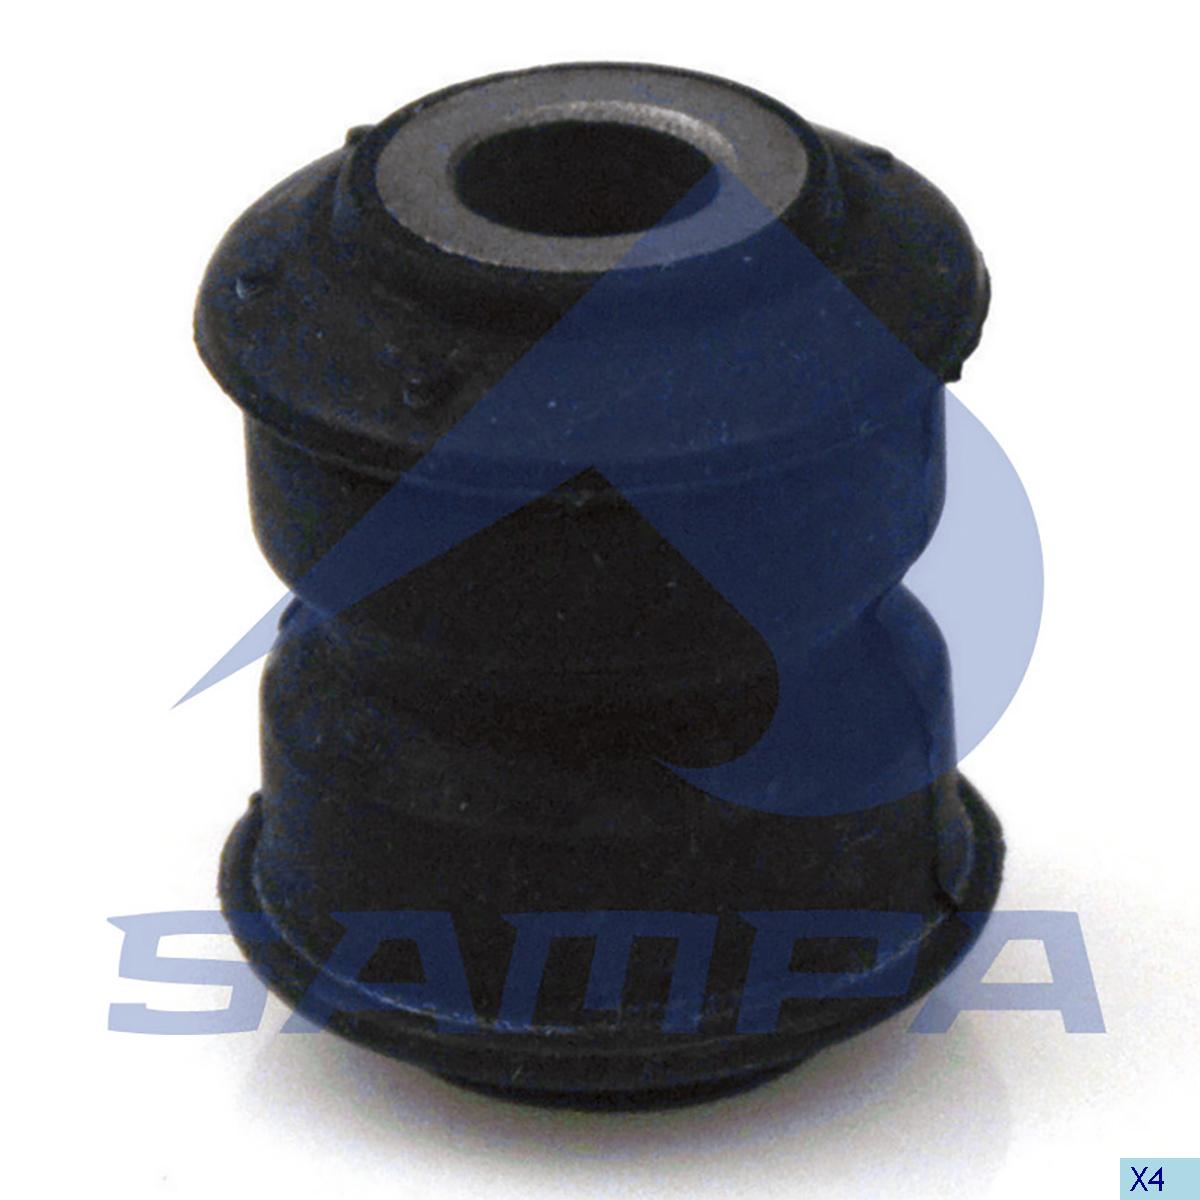 Rubber Bushing, Stabilizer Bar, Man, Suspension